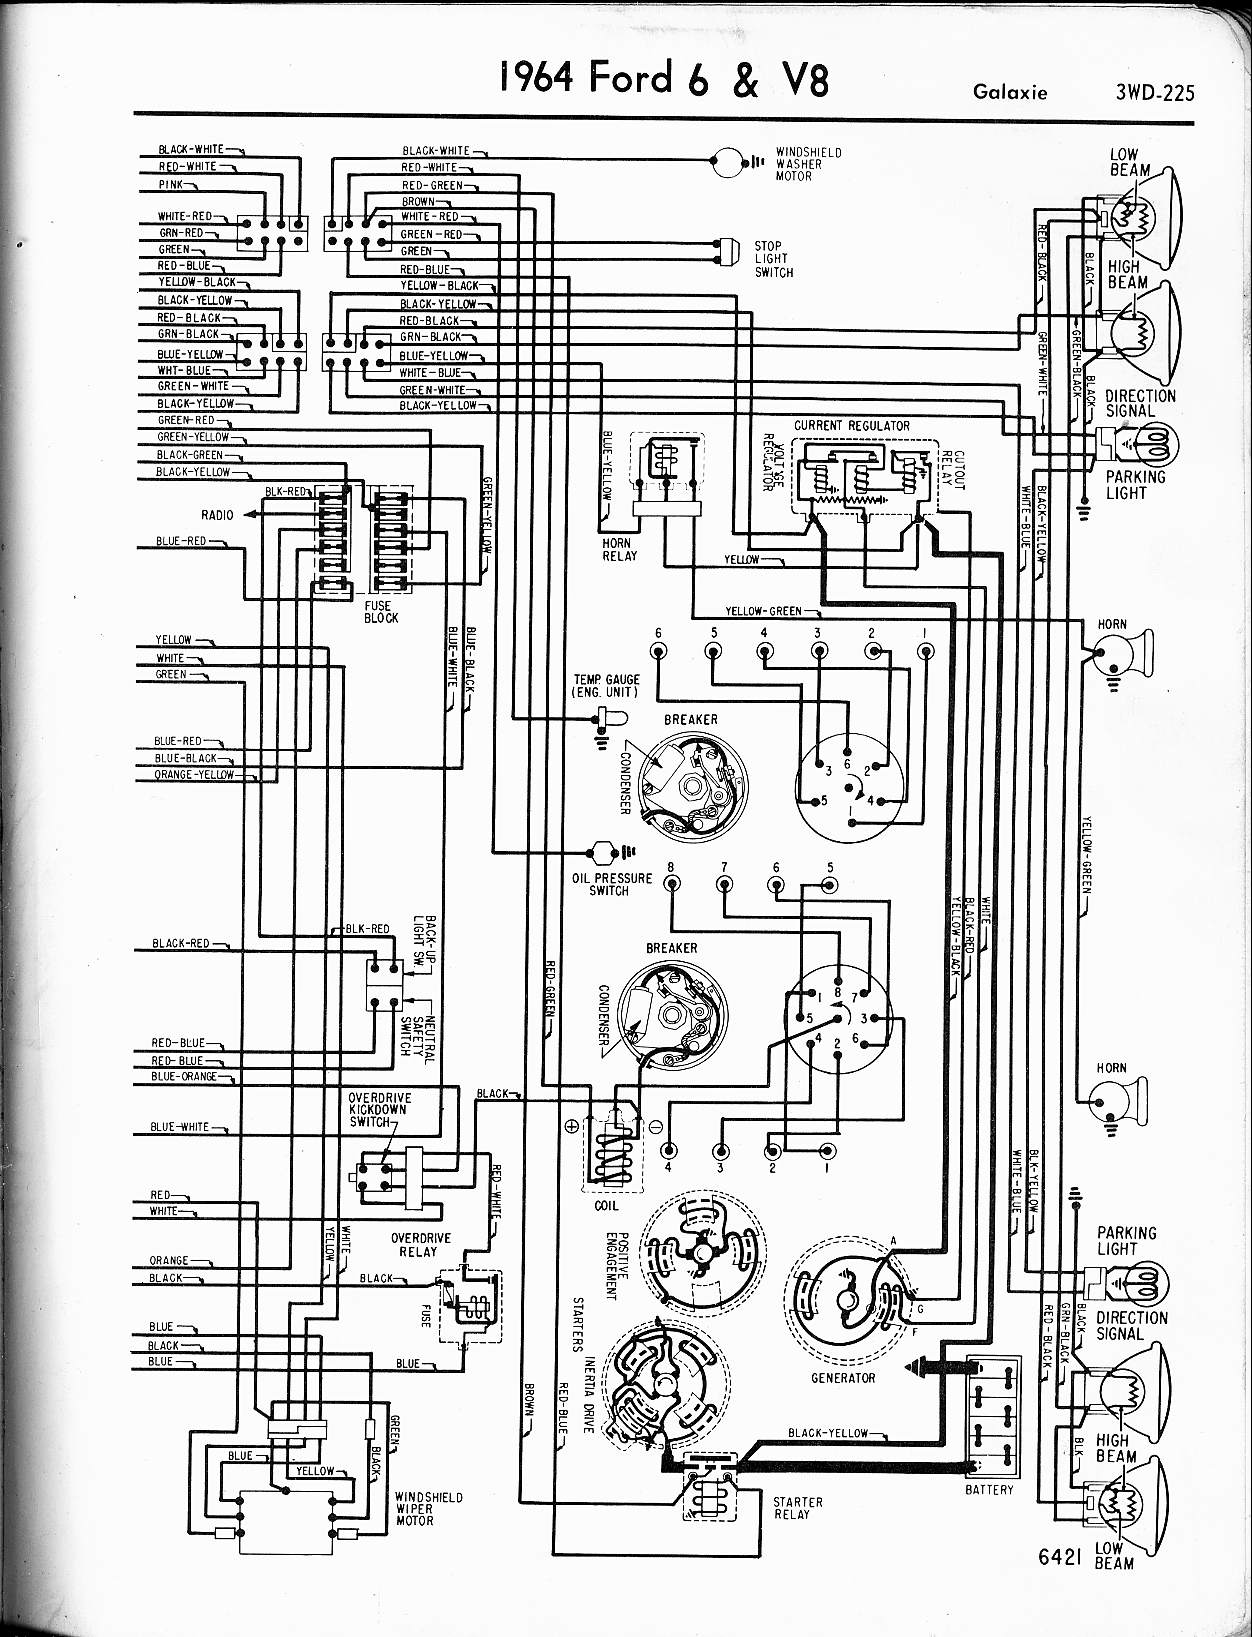 ford econoline van wiring diagram 57 65 ford wiring diagrams 1964 6 v8 galaxie right